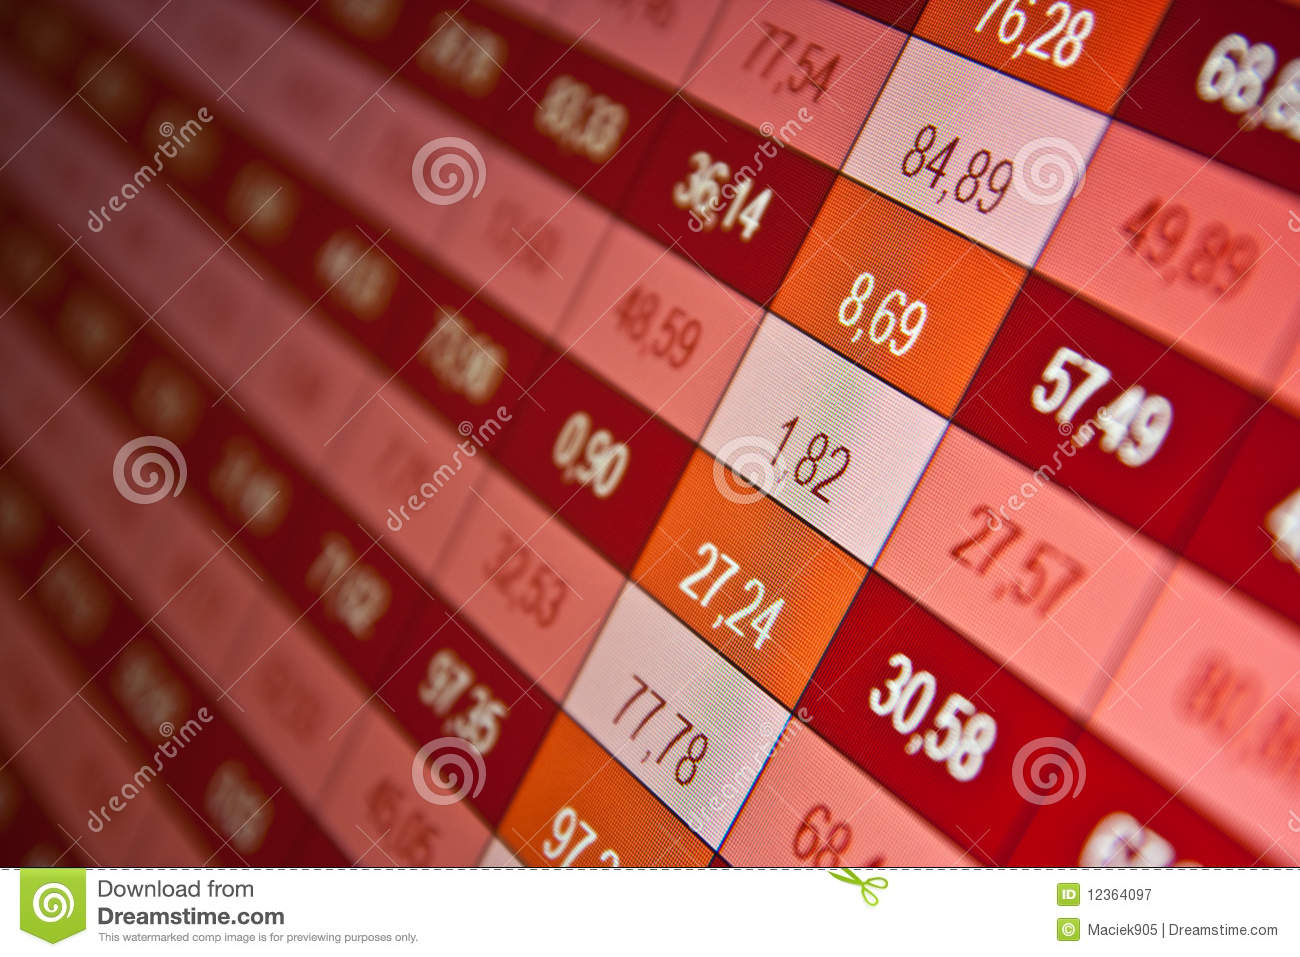 Financial data- stock exchange - loss